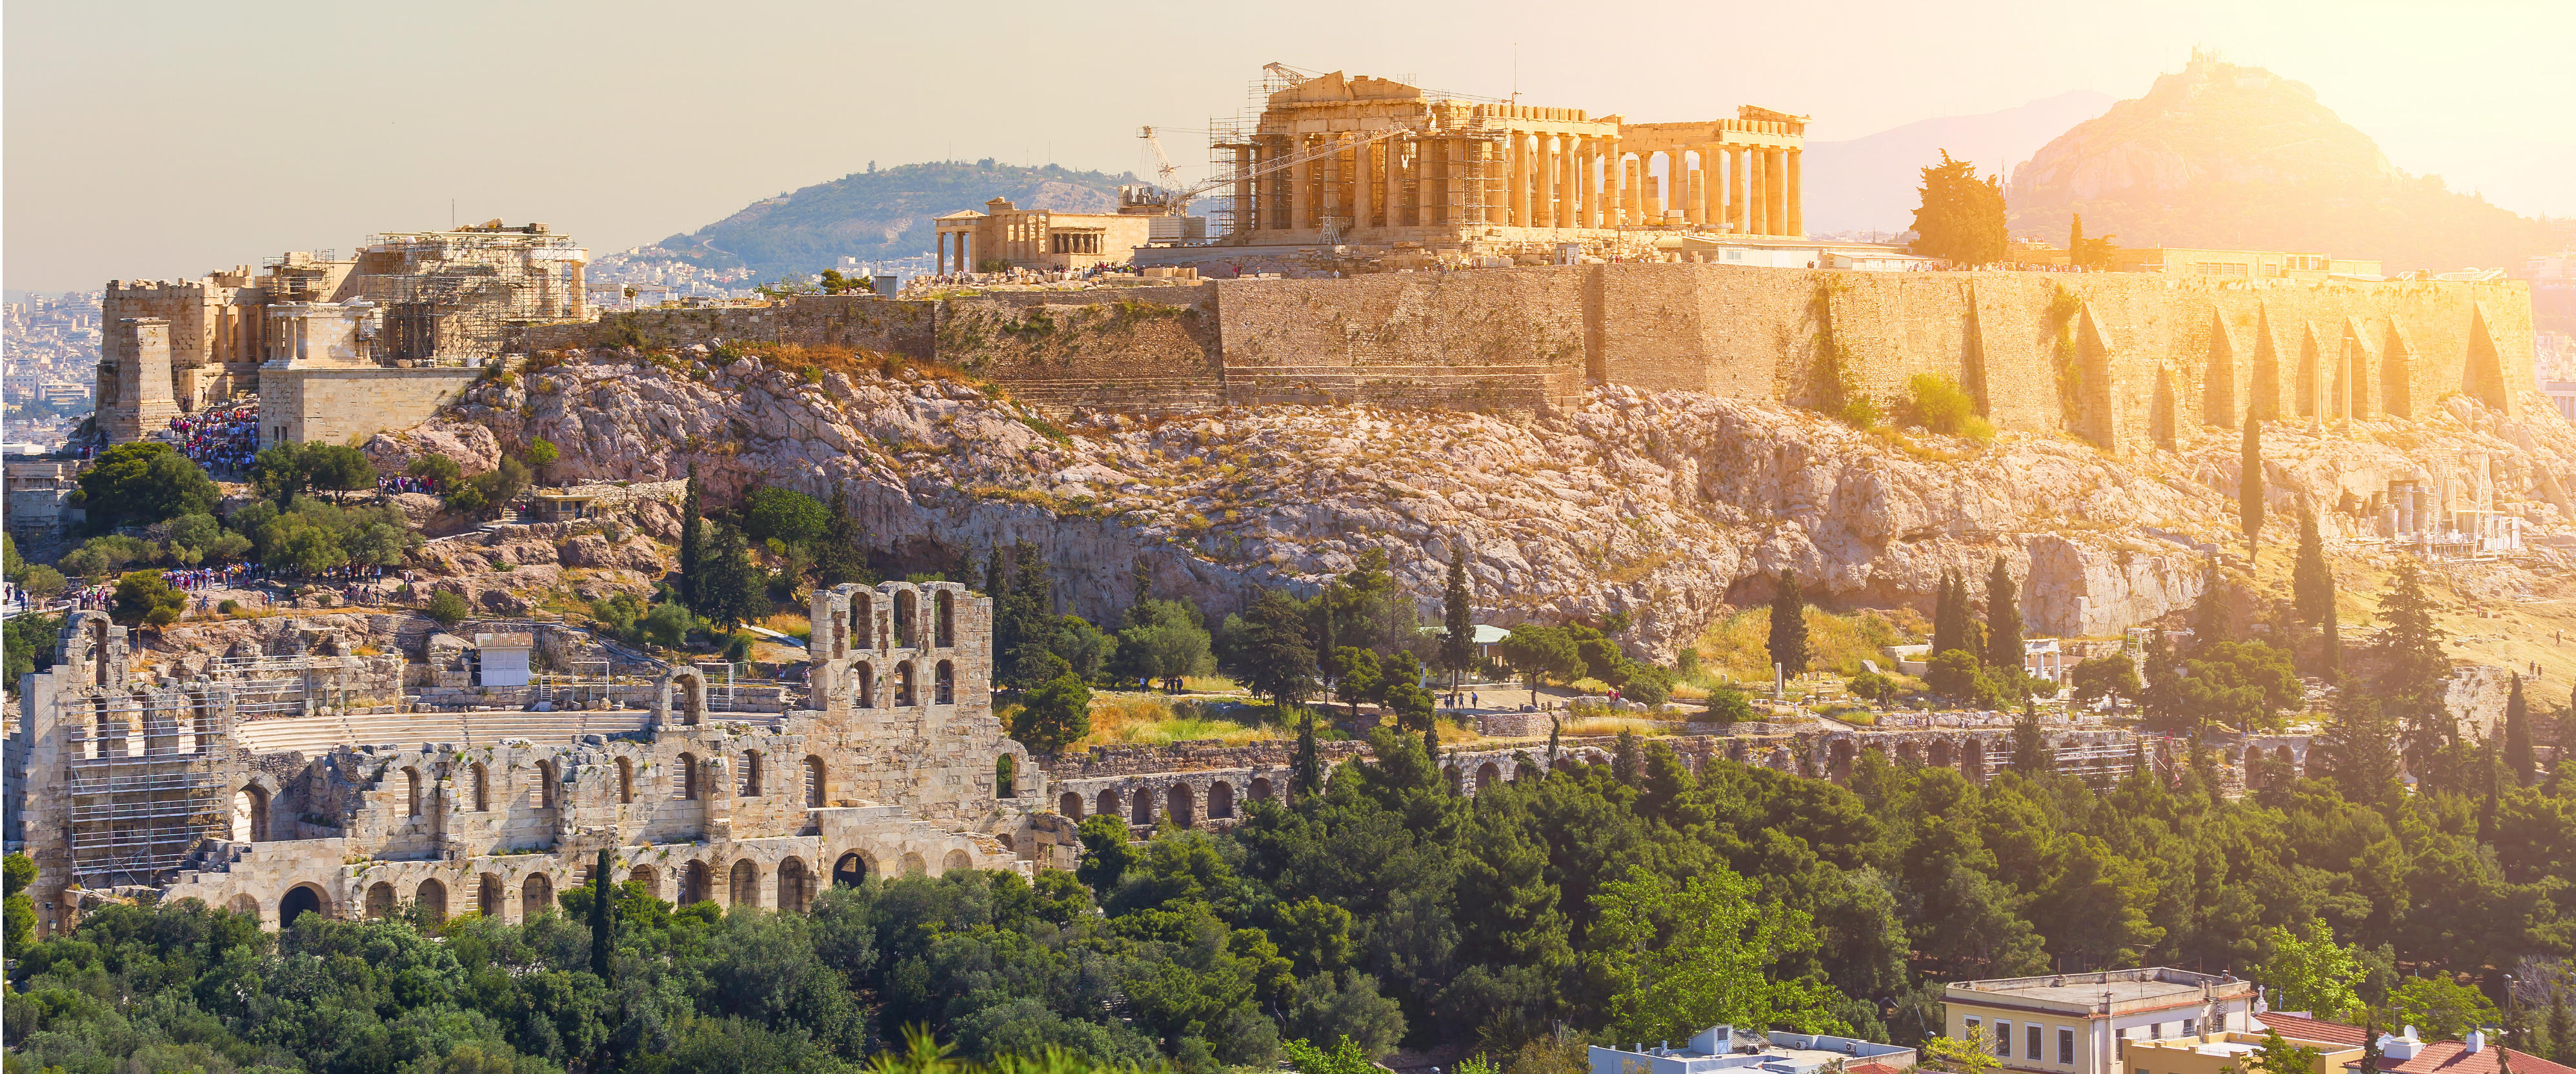 567 577 Nyc To Athens Greece Thru April R T Fly